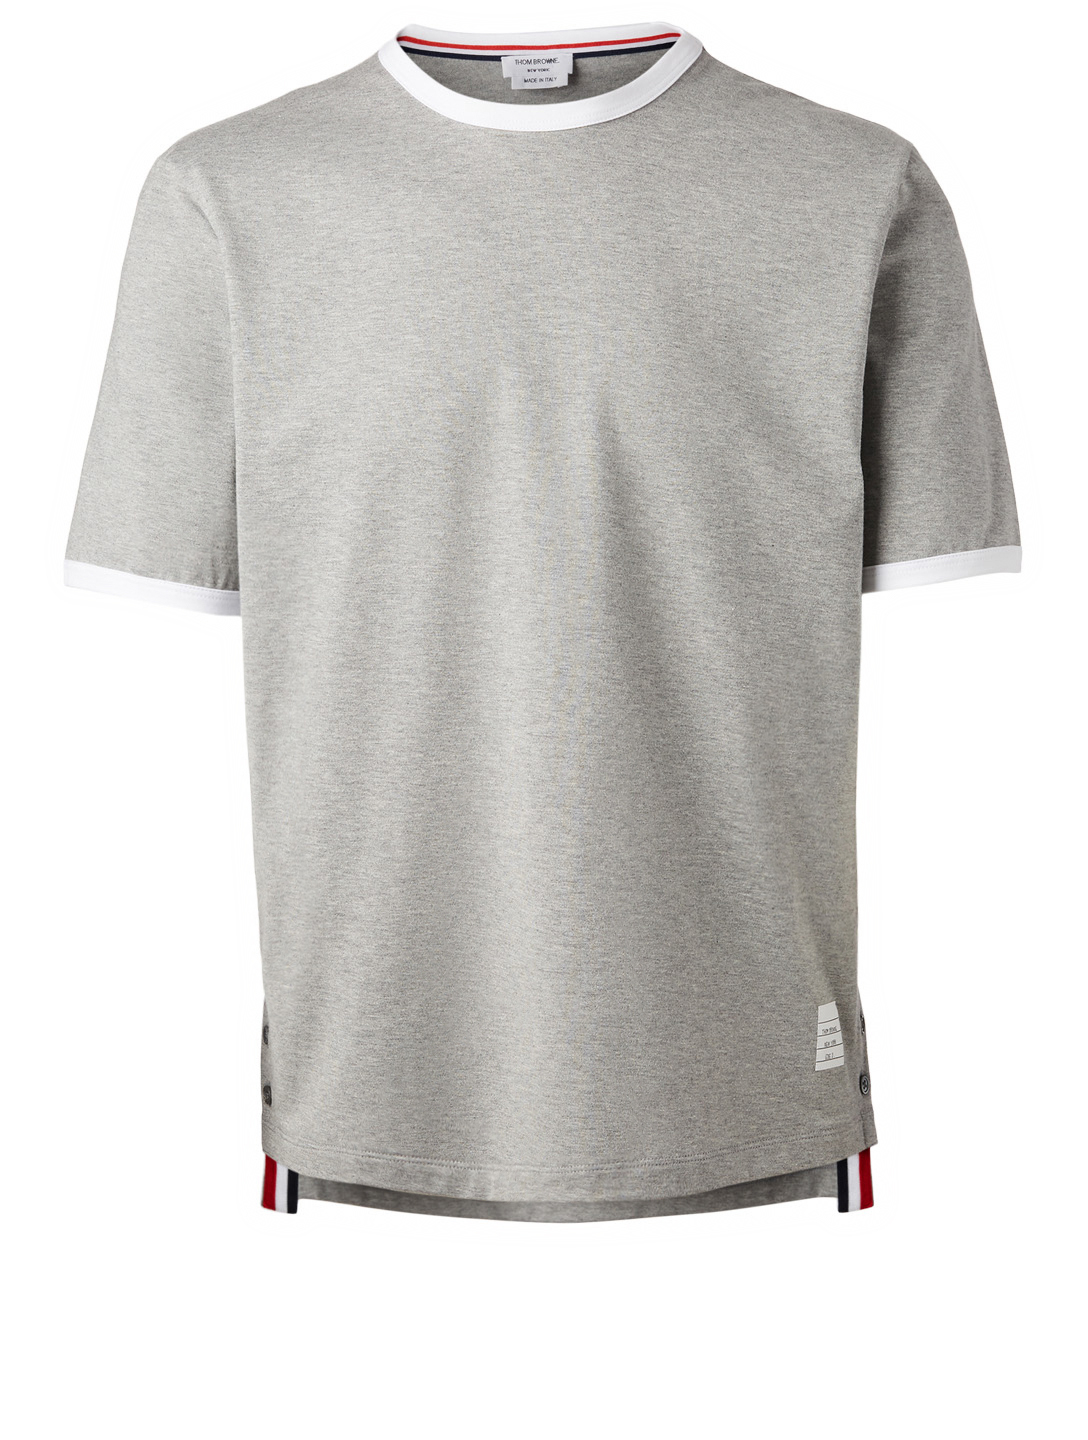 THOM BROWNE Ringer T-Shirt Men's Grey